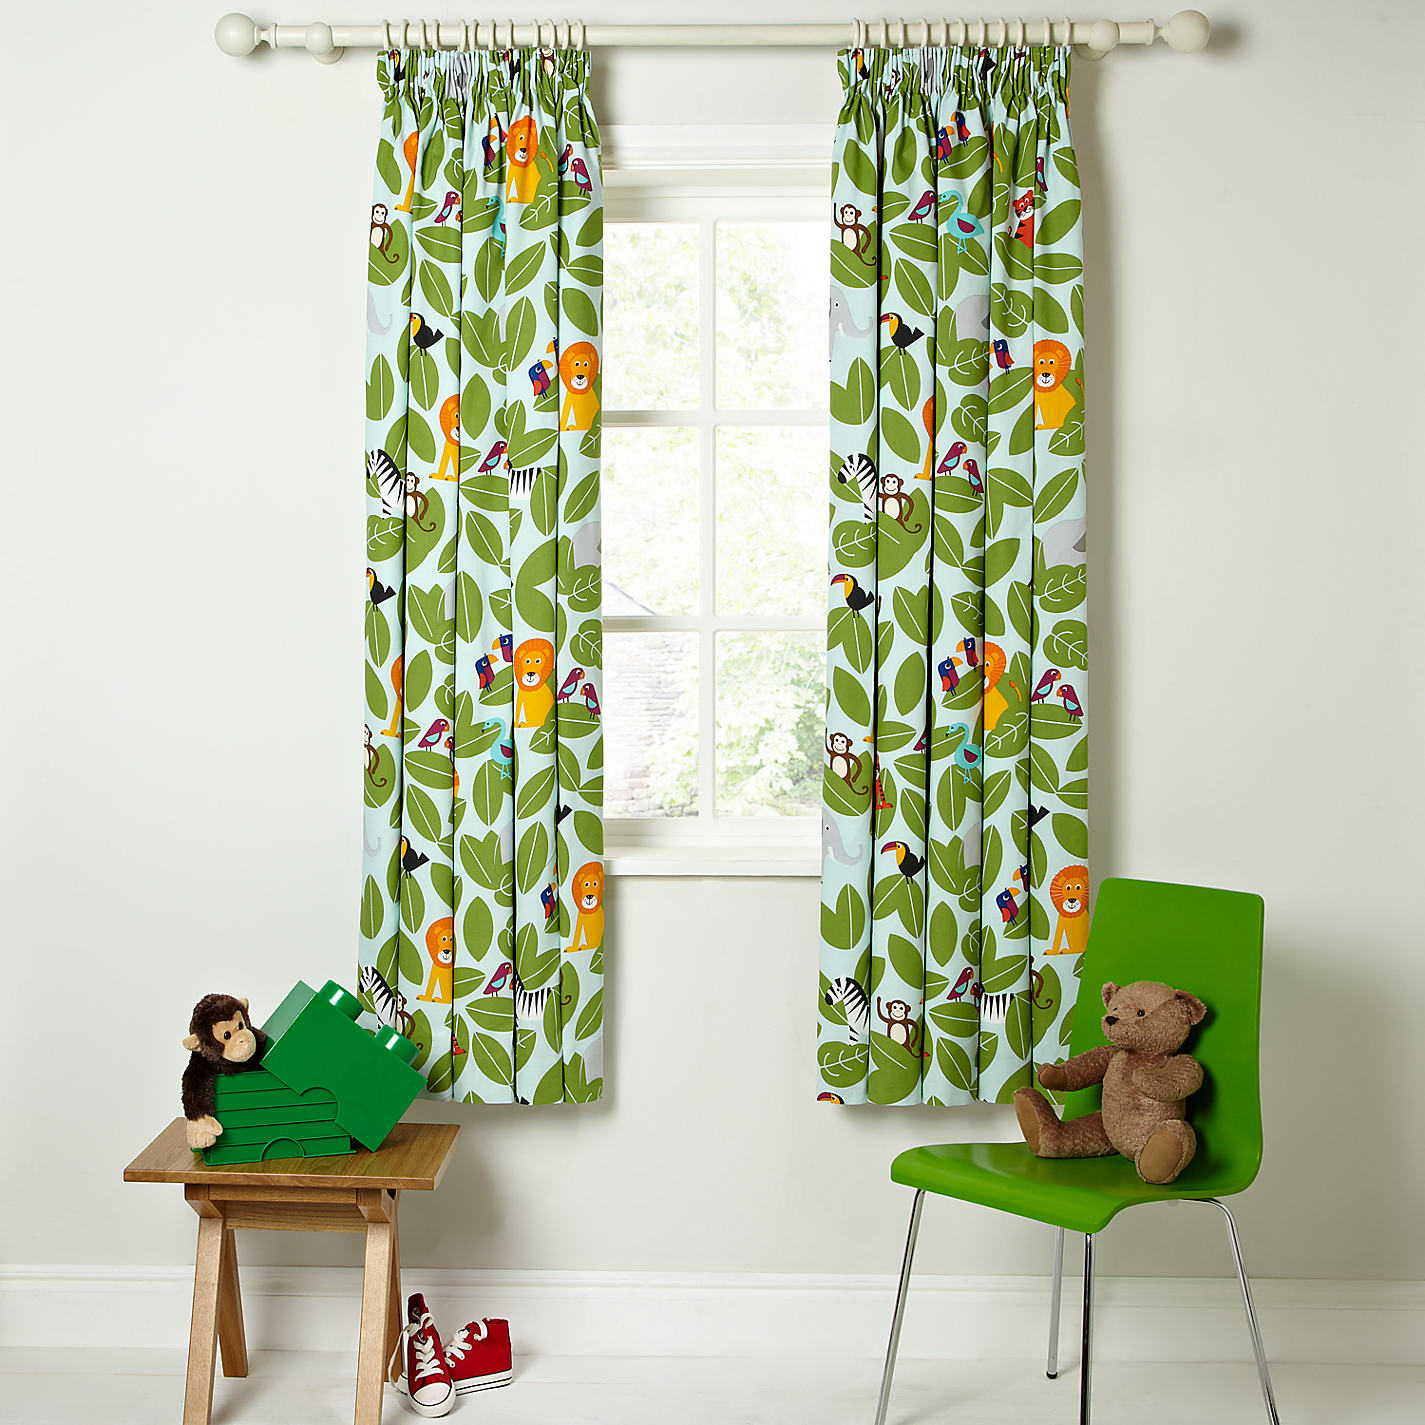 Net curtain material john lewis curtain menzilperde net for Boys curtain material